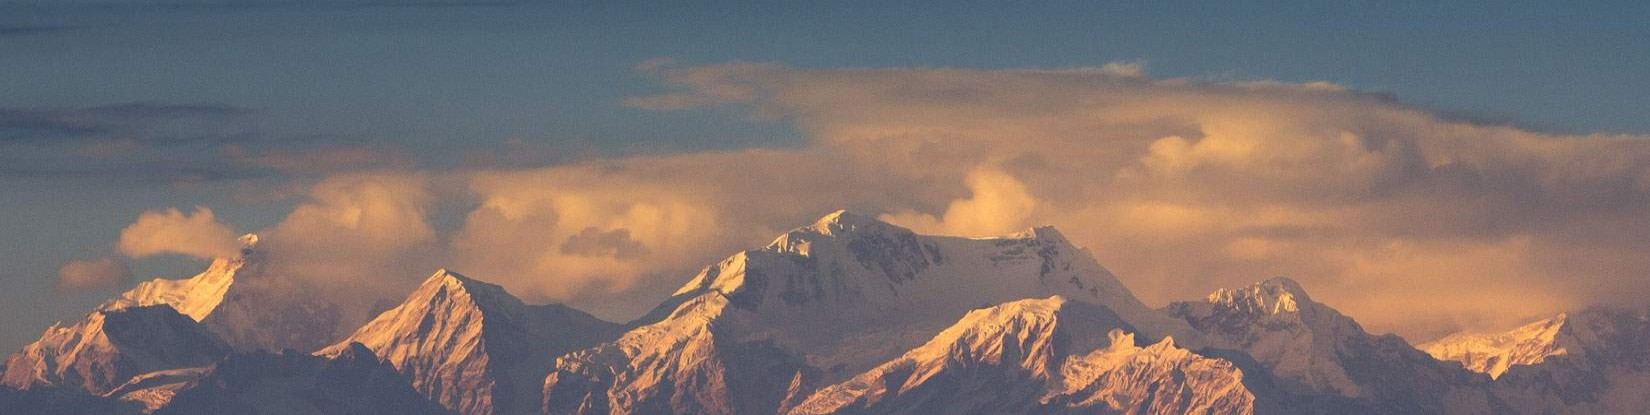 The Himalayas on sight from the window of the flight!